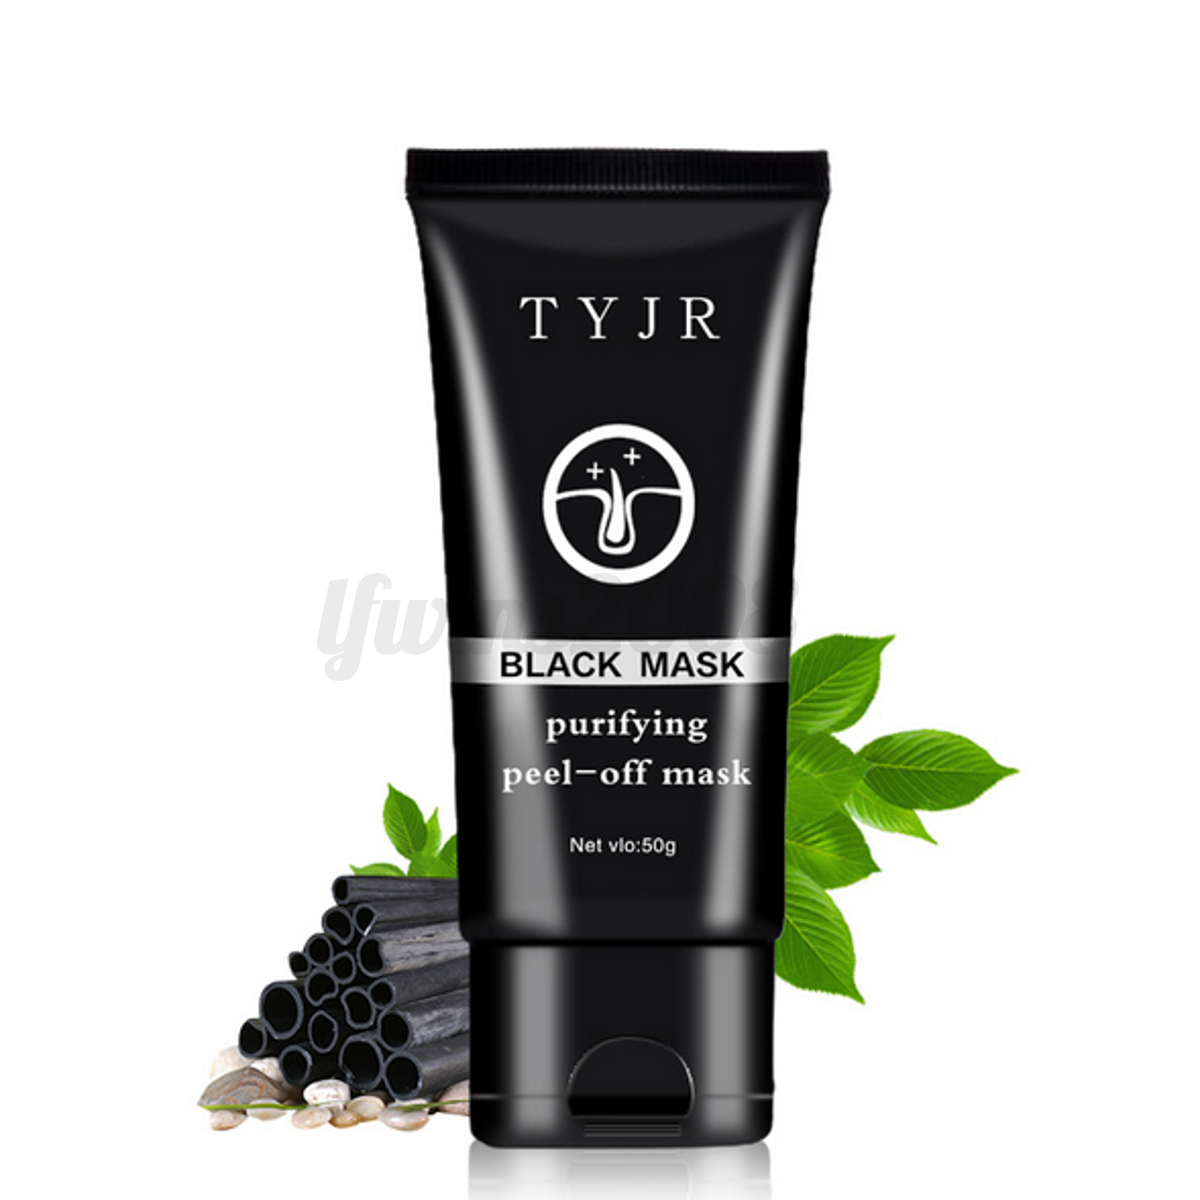 tyjr masque charbon boue anti point noir acn black mask peau nez soin nettoyage ebay. Black Bedroom Furniture Sets. Home Design Ideas